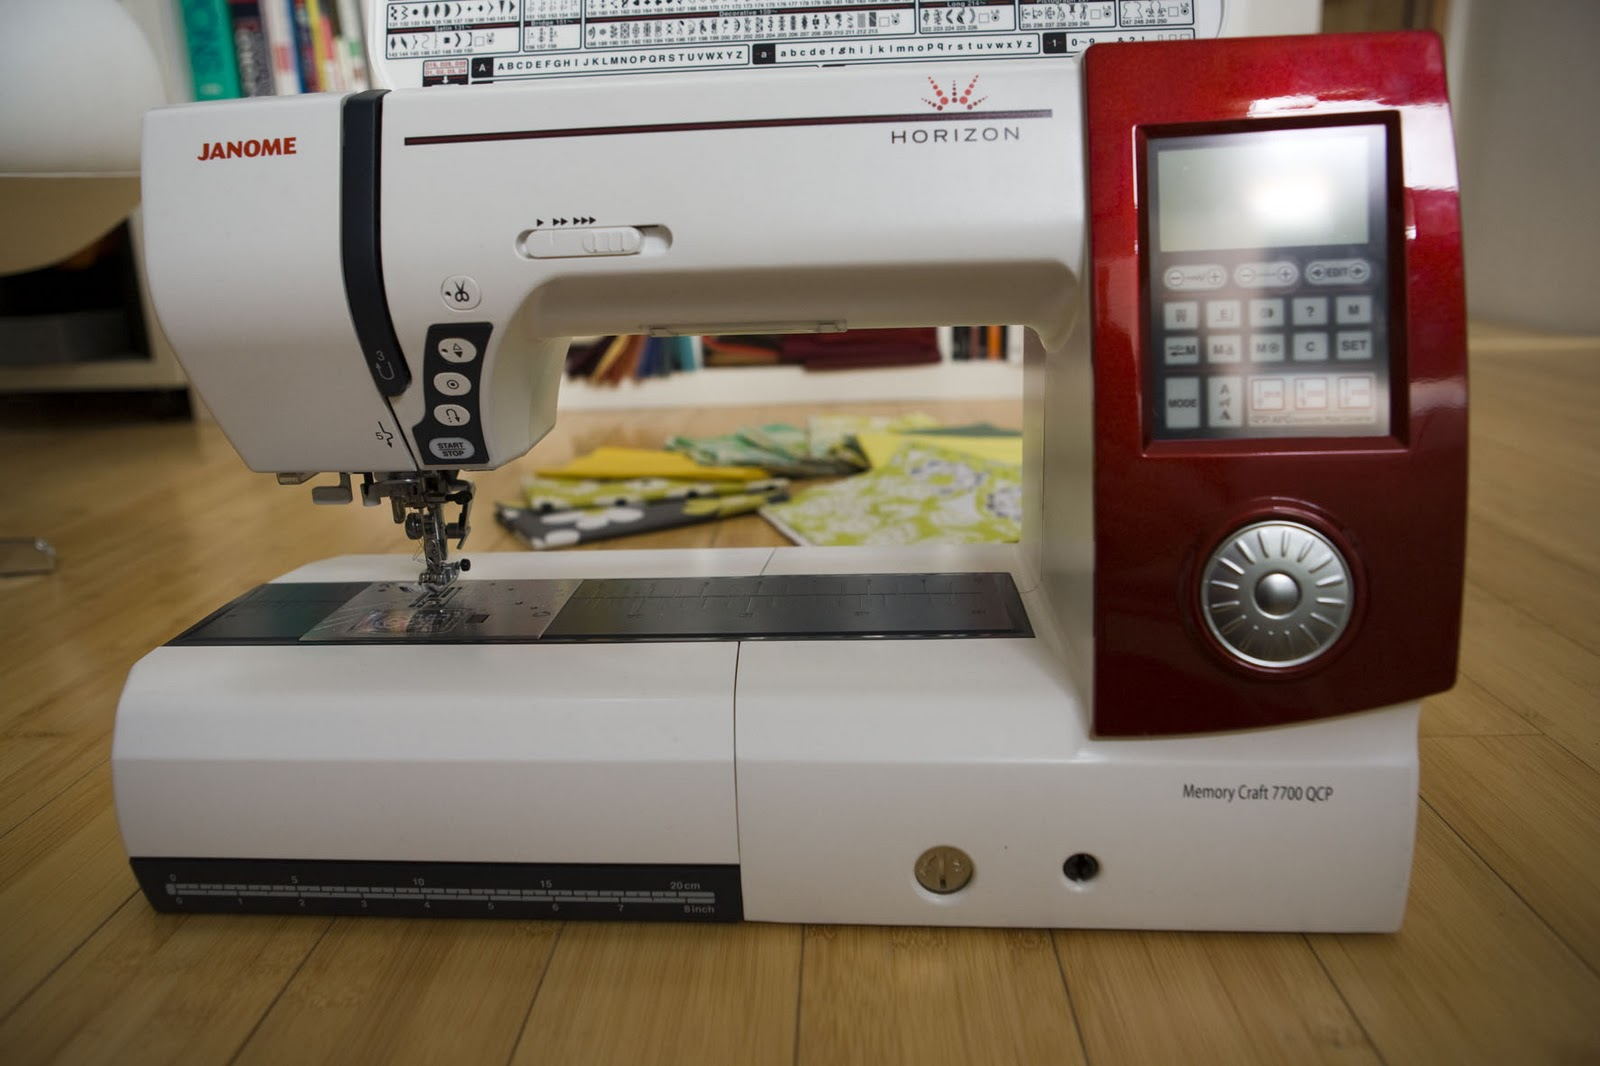 Janome memory craft 9900 - Needles And Lemons Janome Horizon Memory Craft 7700 Sewing Machine Review